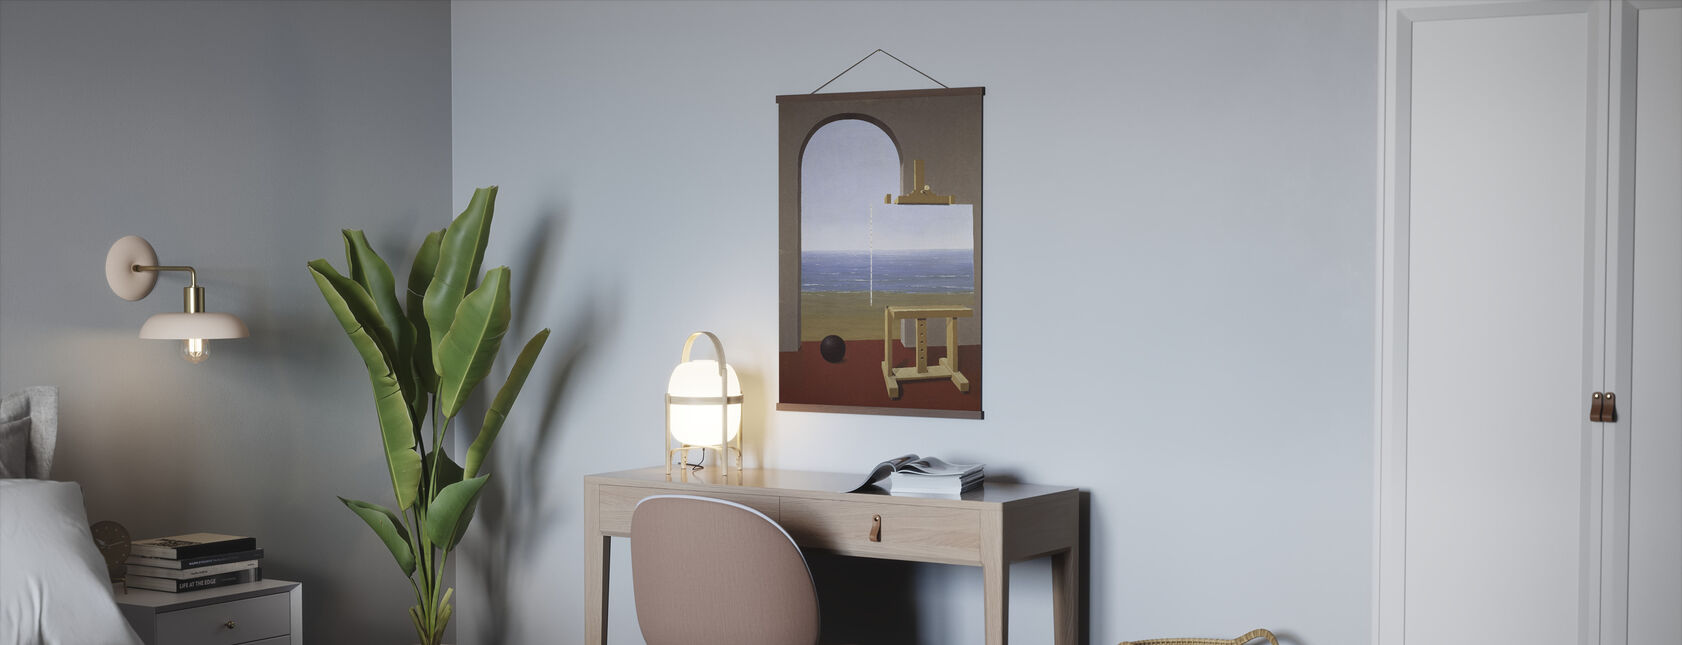 Human Condition - Rene Magritte - Poster - Office